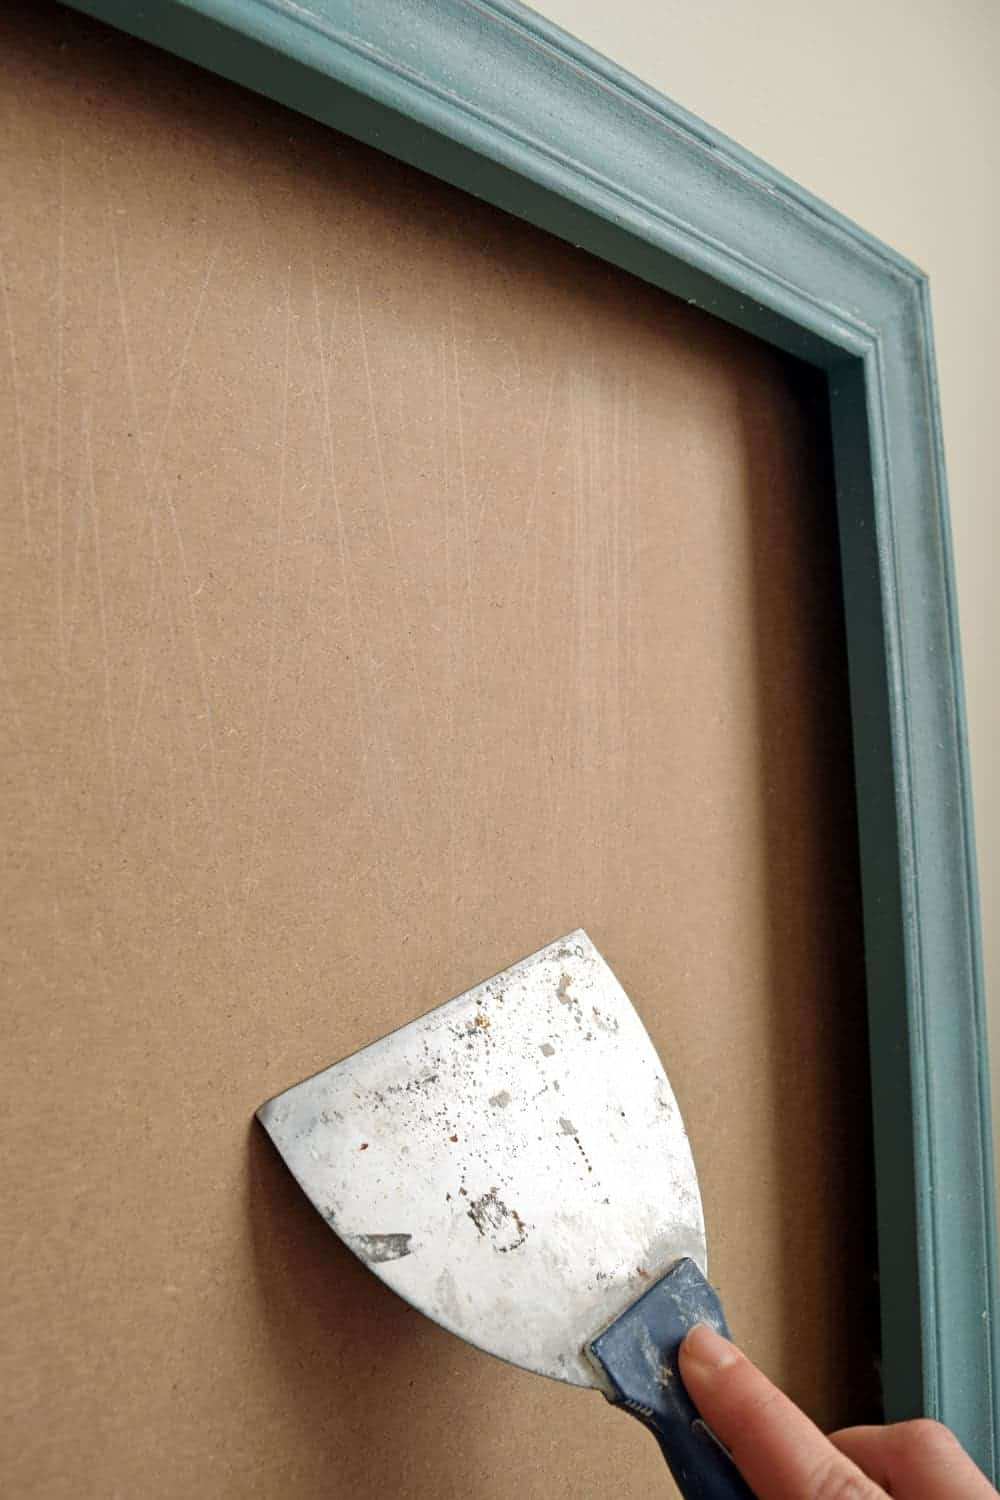 Turquoise wood frame with plane backer board scraped clean with metal putty knife.